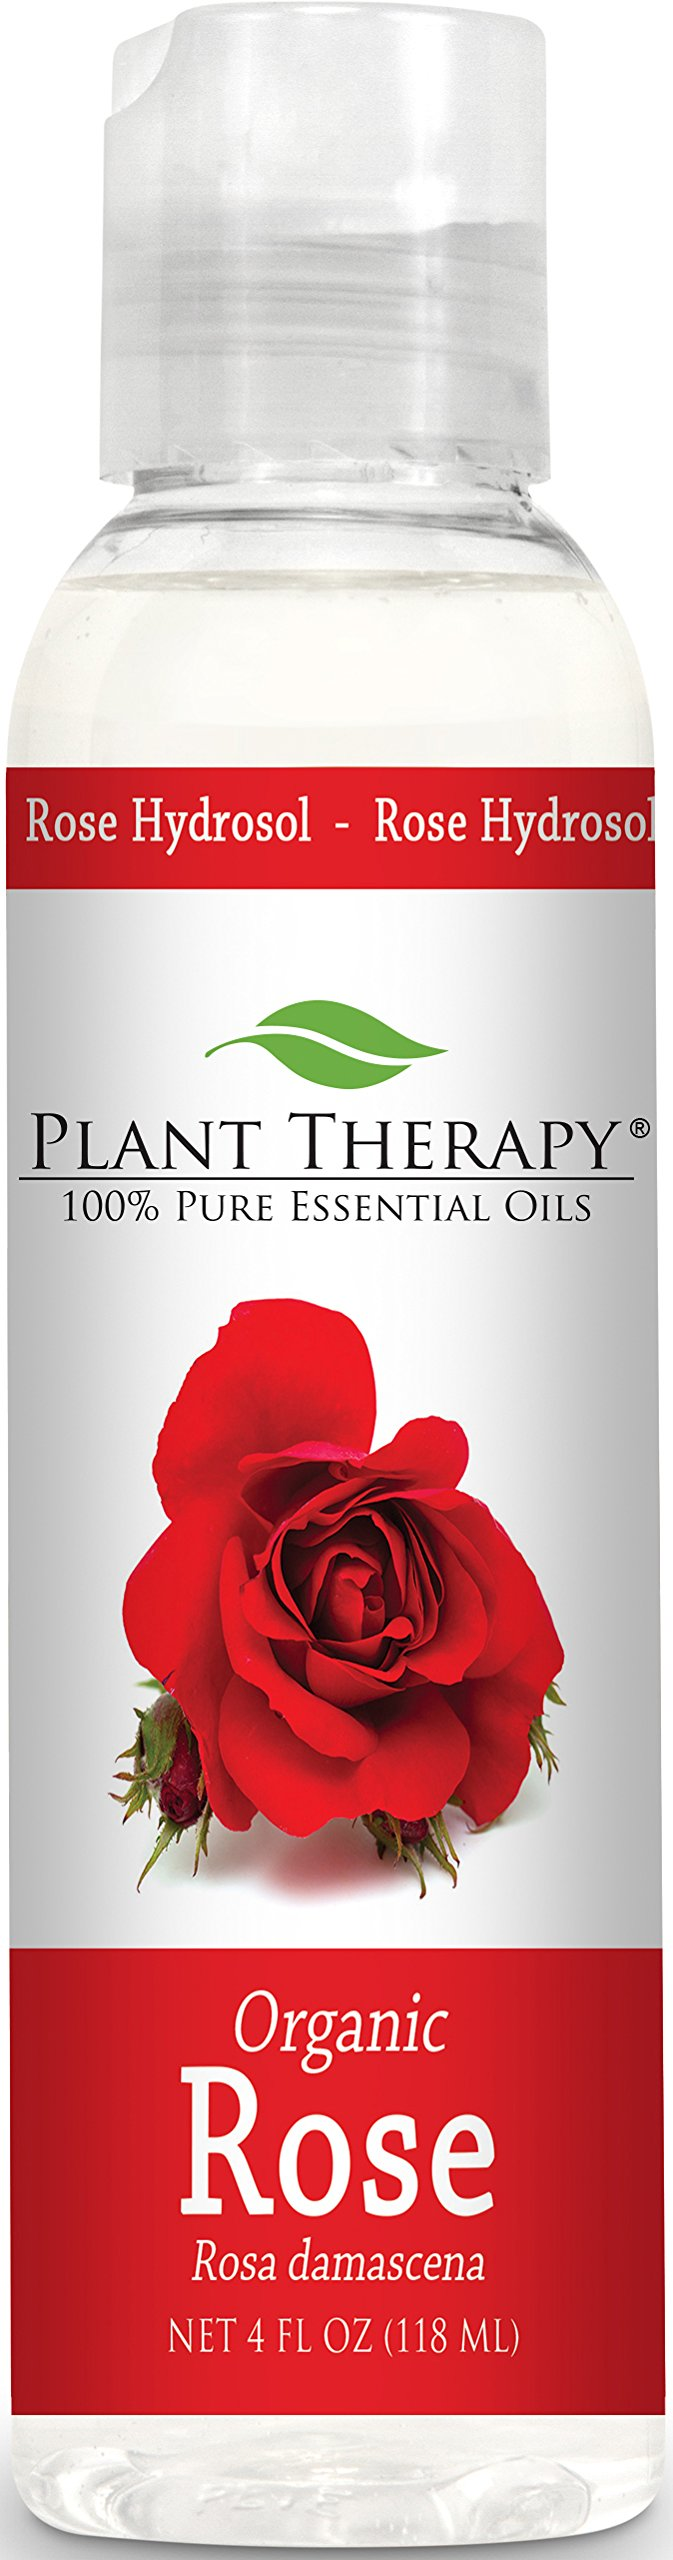 Plant Therapy Organic Rose Hydrosol. (Flower Water, Floral Water, Hydrolats, Distillates) Bi-Product of Essential Oils. 4 oz.